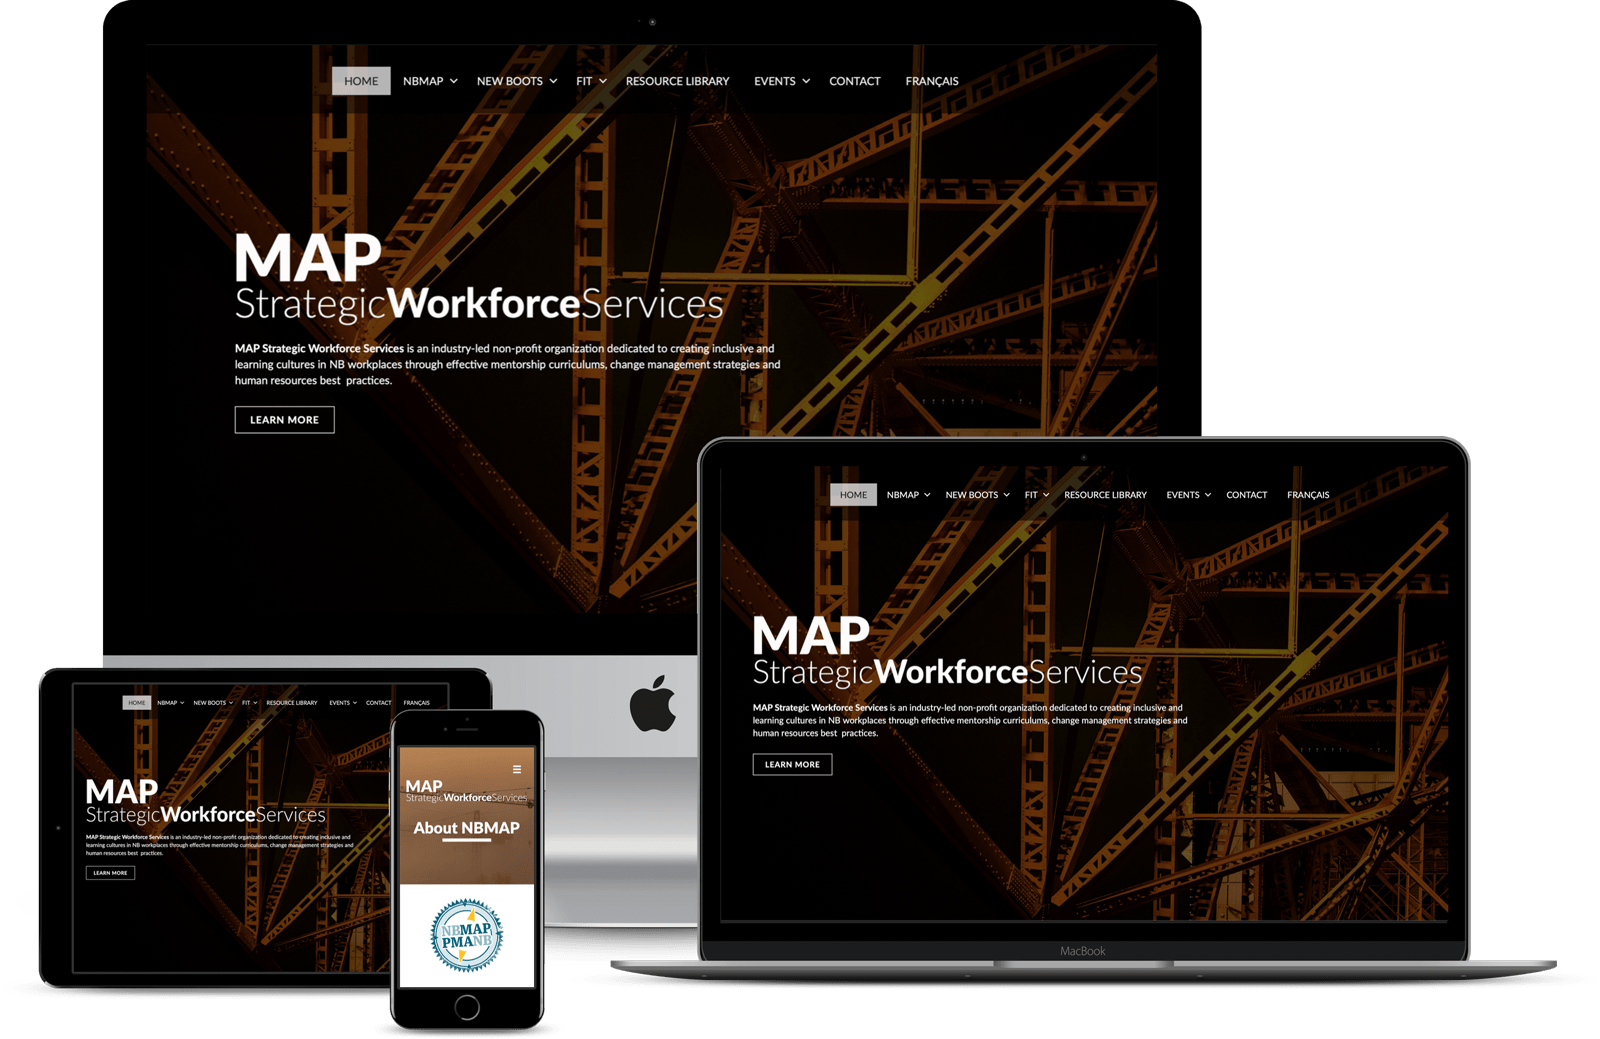 MAP-Strategic-Workforce-Services Displayed On Multiple Devices